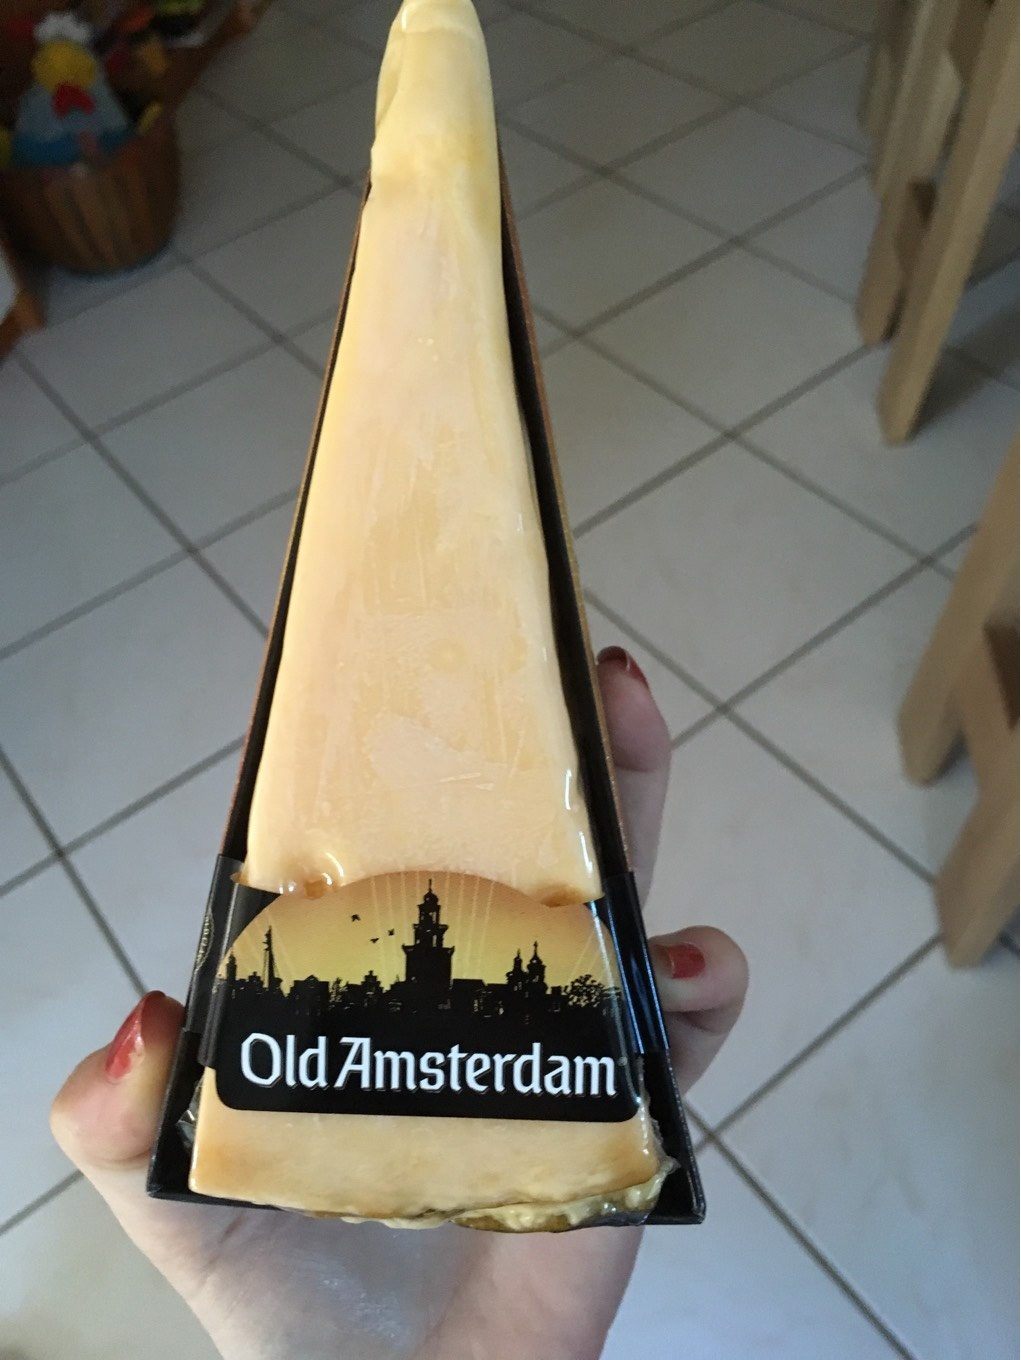 Old amsterdam - Product